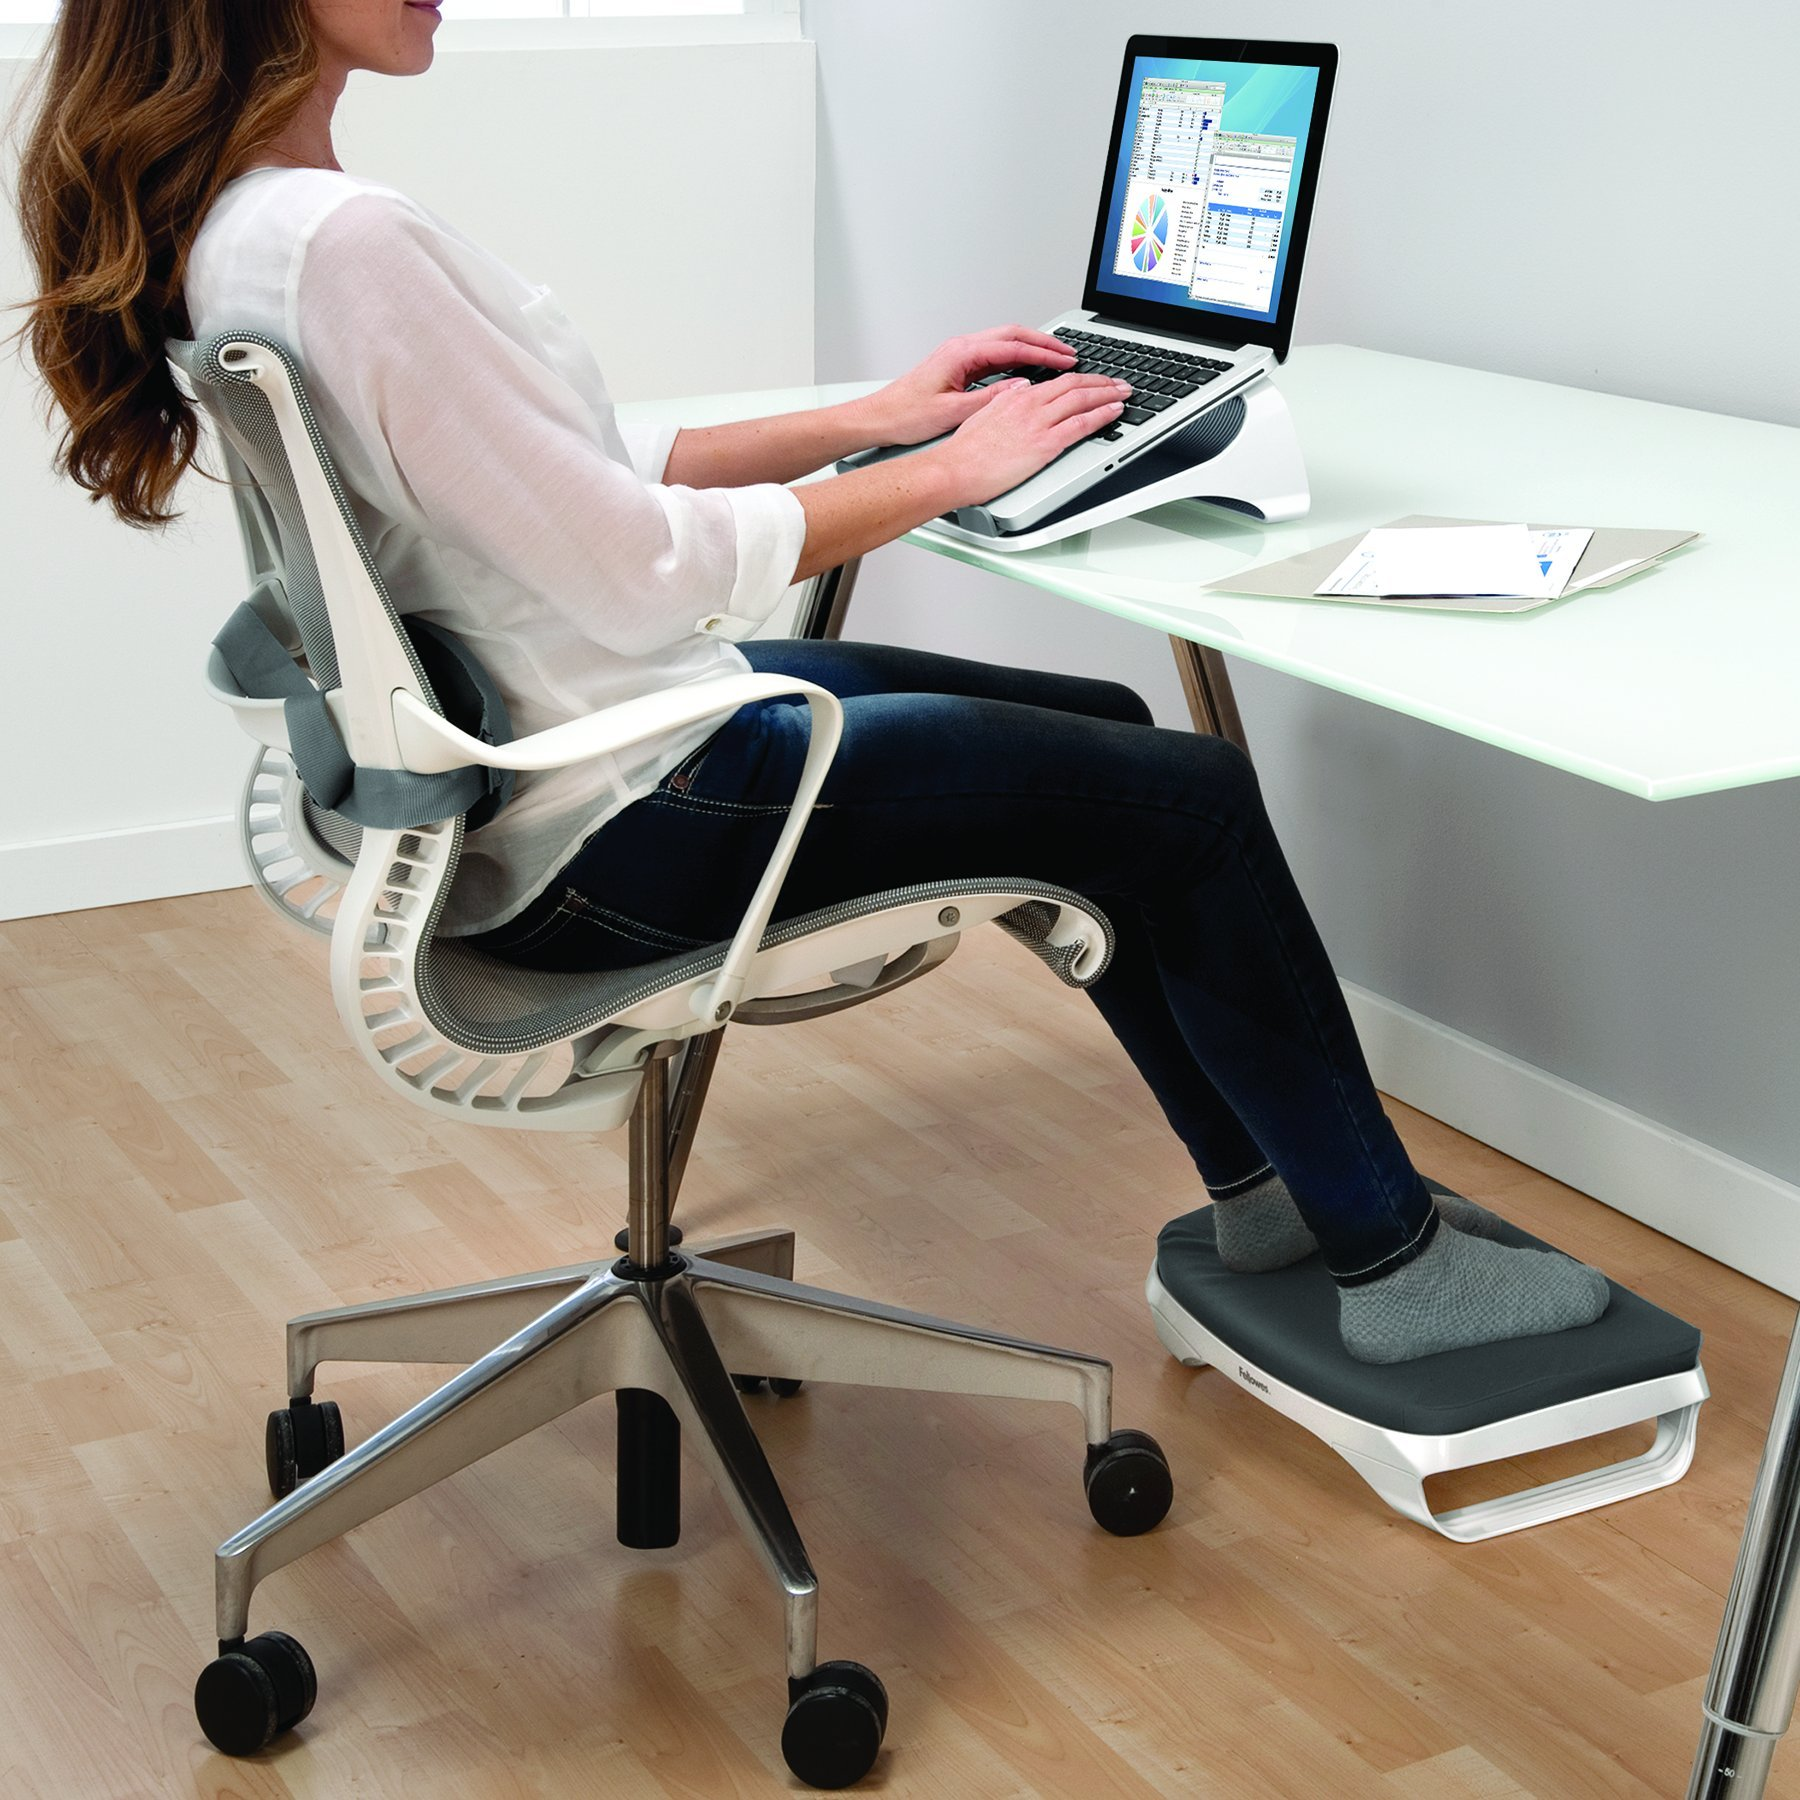 Fellowes I-Spire Series Foot Cushion/Rest, White/Gray (9311701) by Fellowes (Image #6)